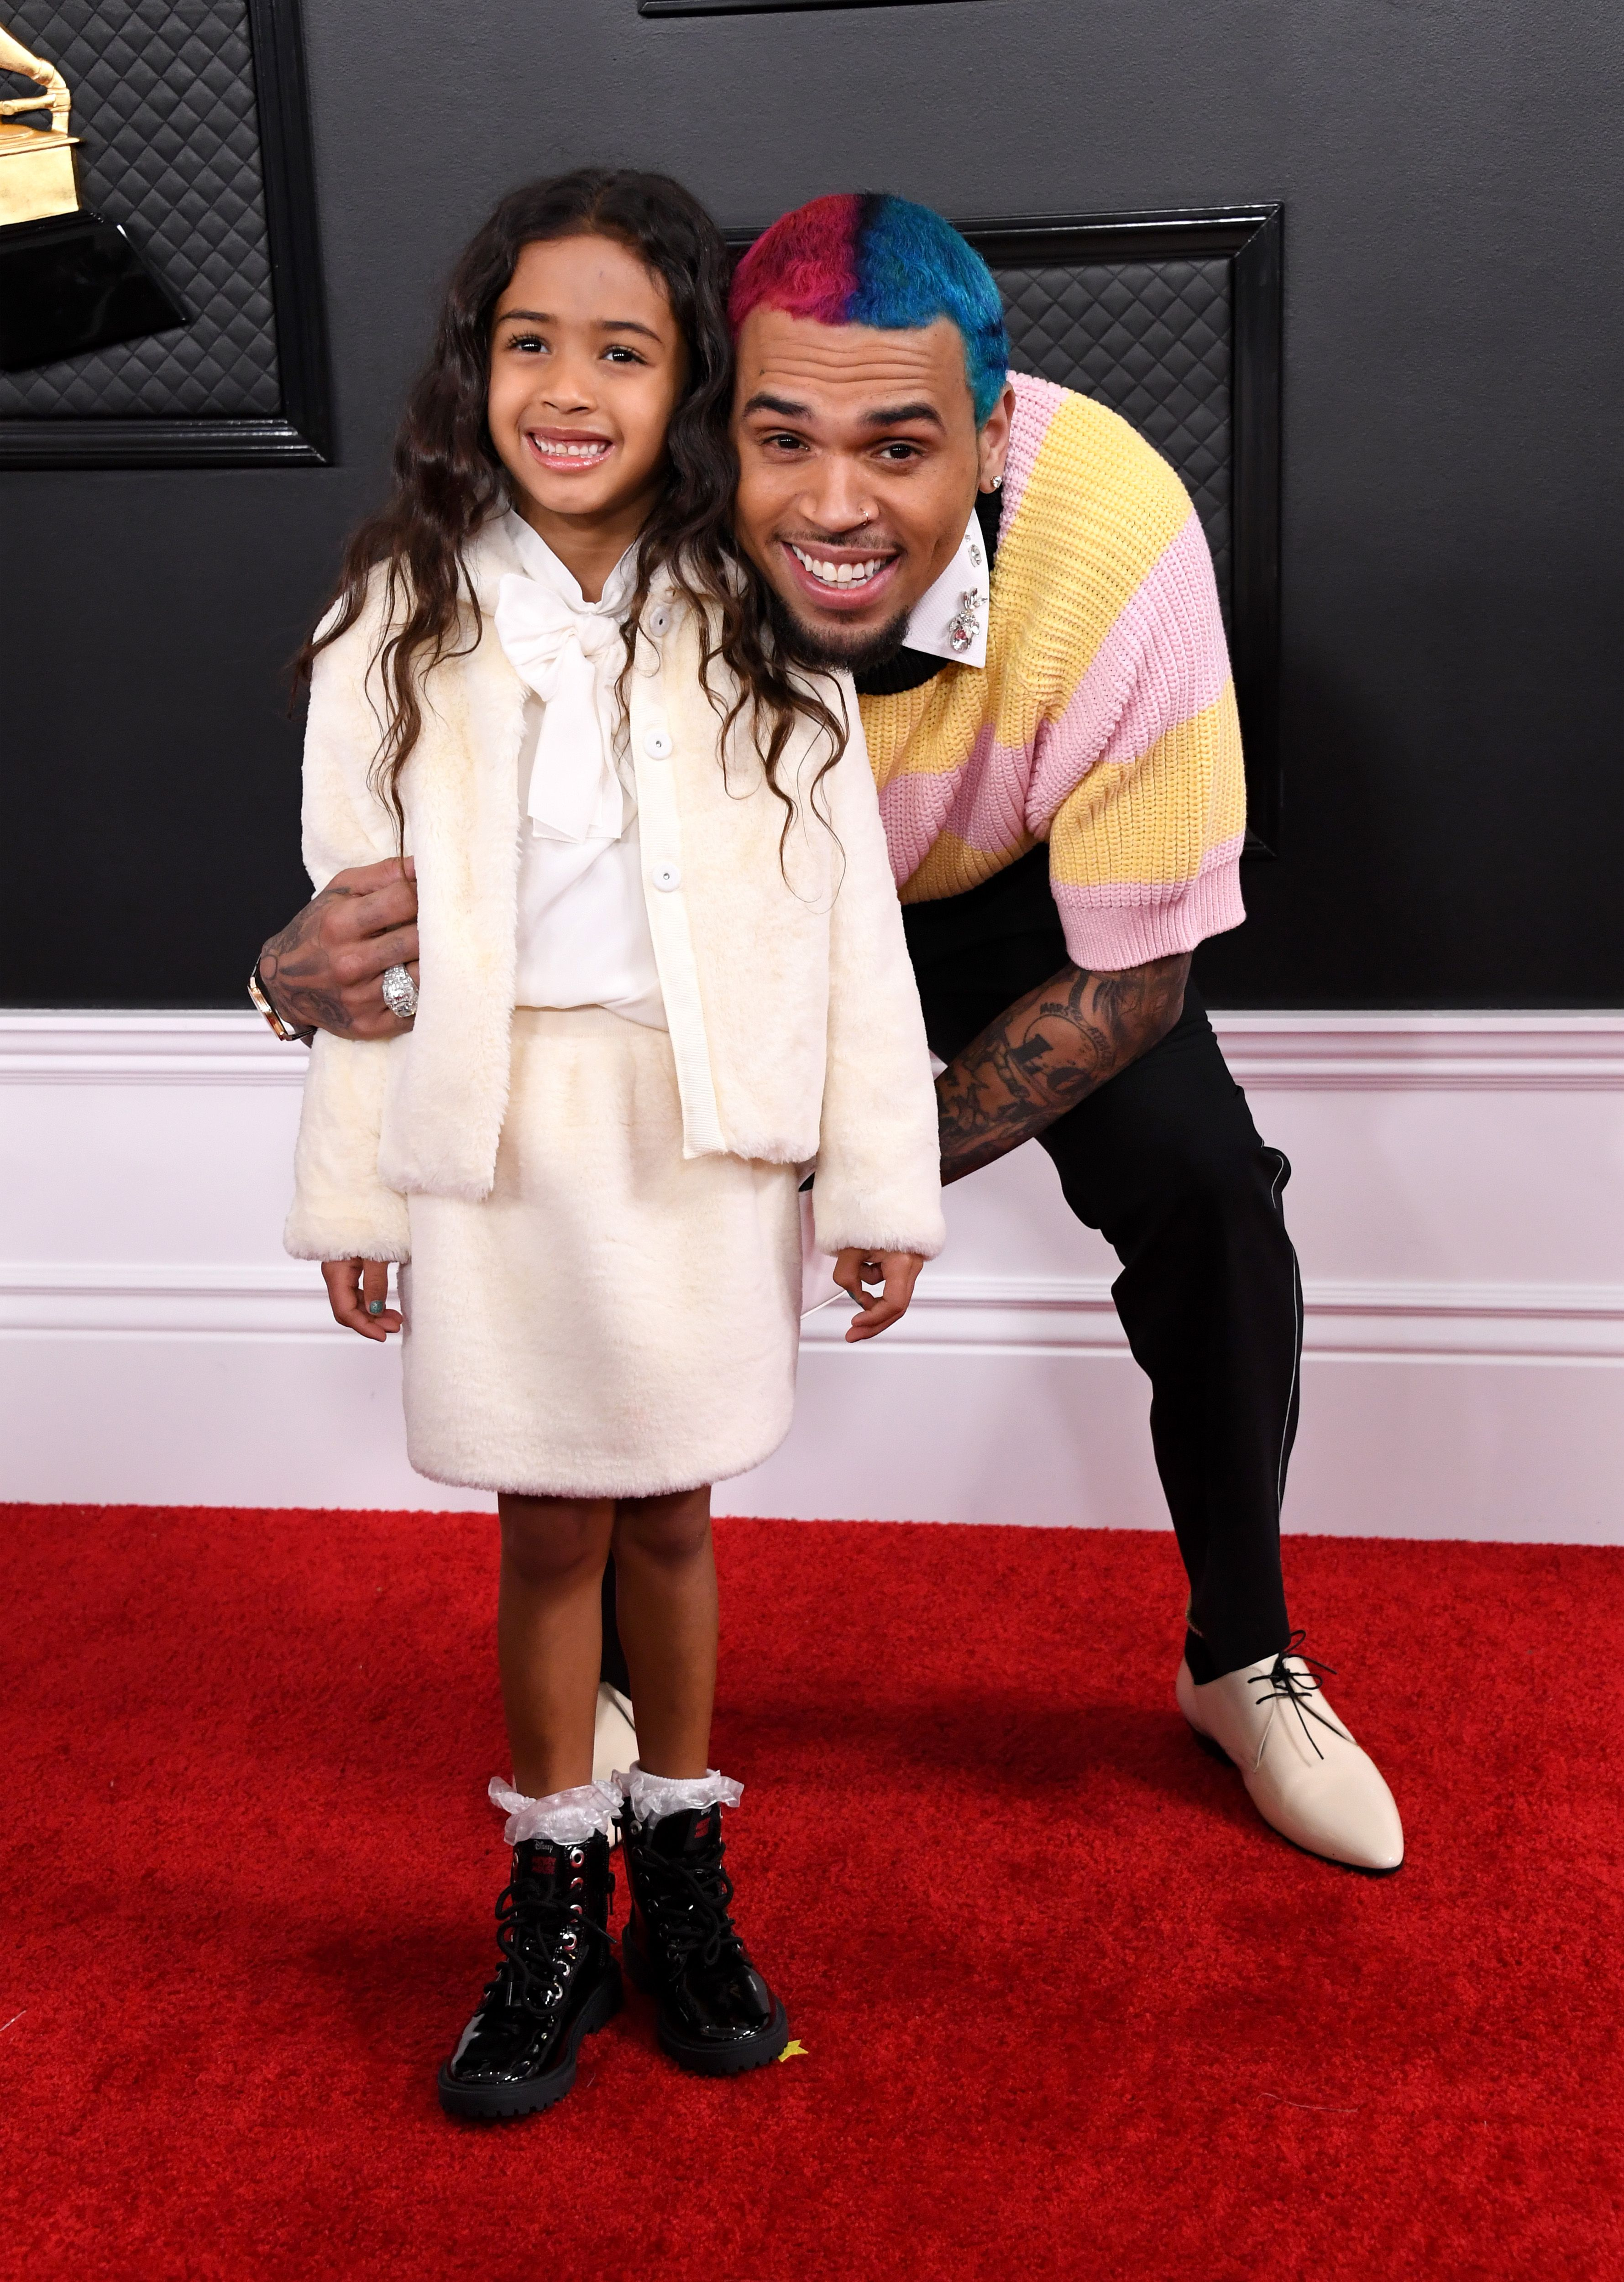 Chris Brown and Royalty Brown attend the 62nd Annual Grammy Awards at Staples Center on January 26, 2020  I Photo: Getty Images.